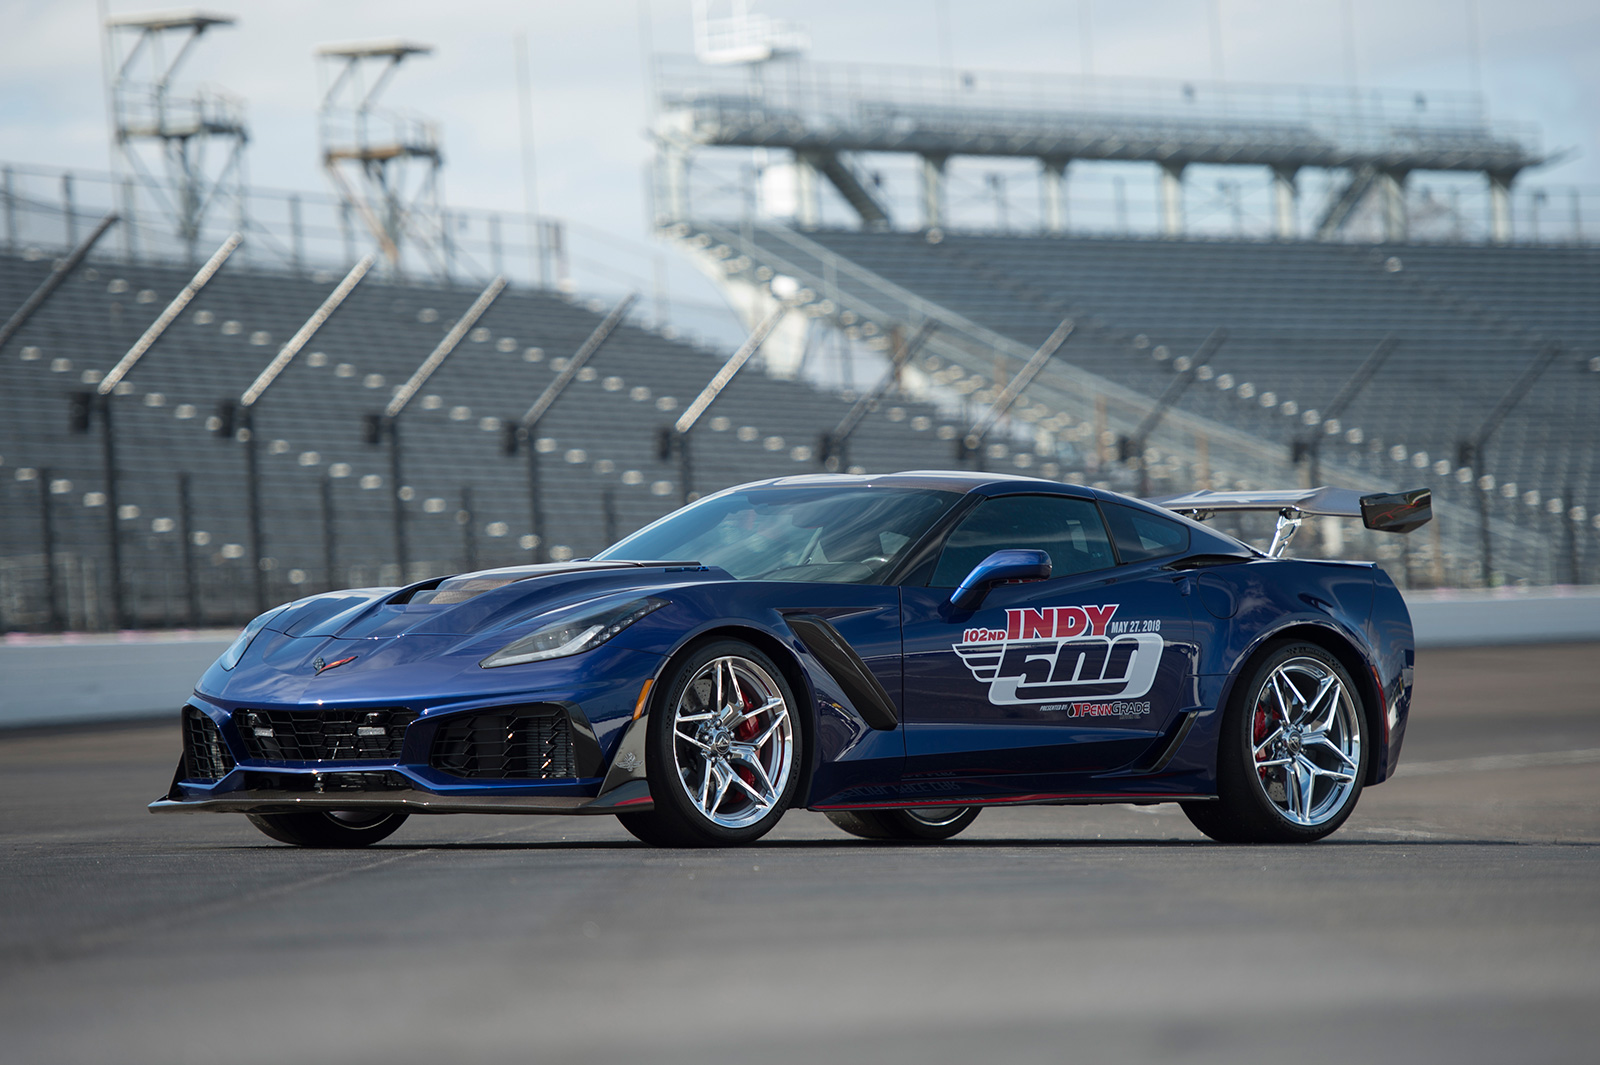 2019 Chevrolet Corvette Zr1 Named Indy 500 Pace Car